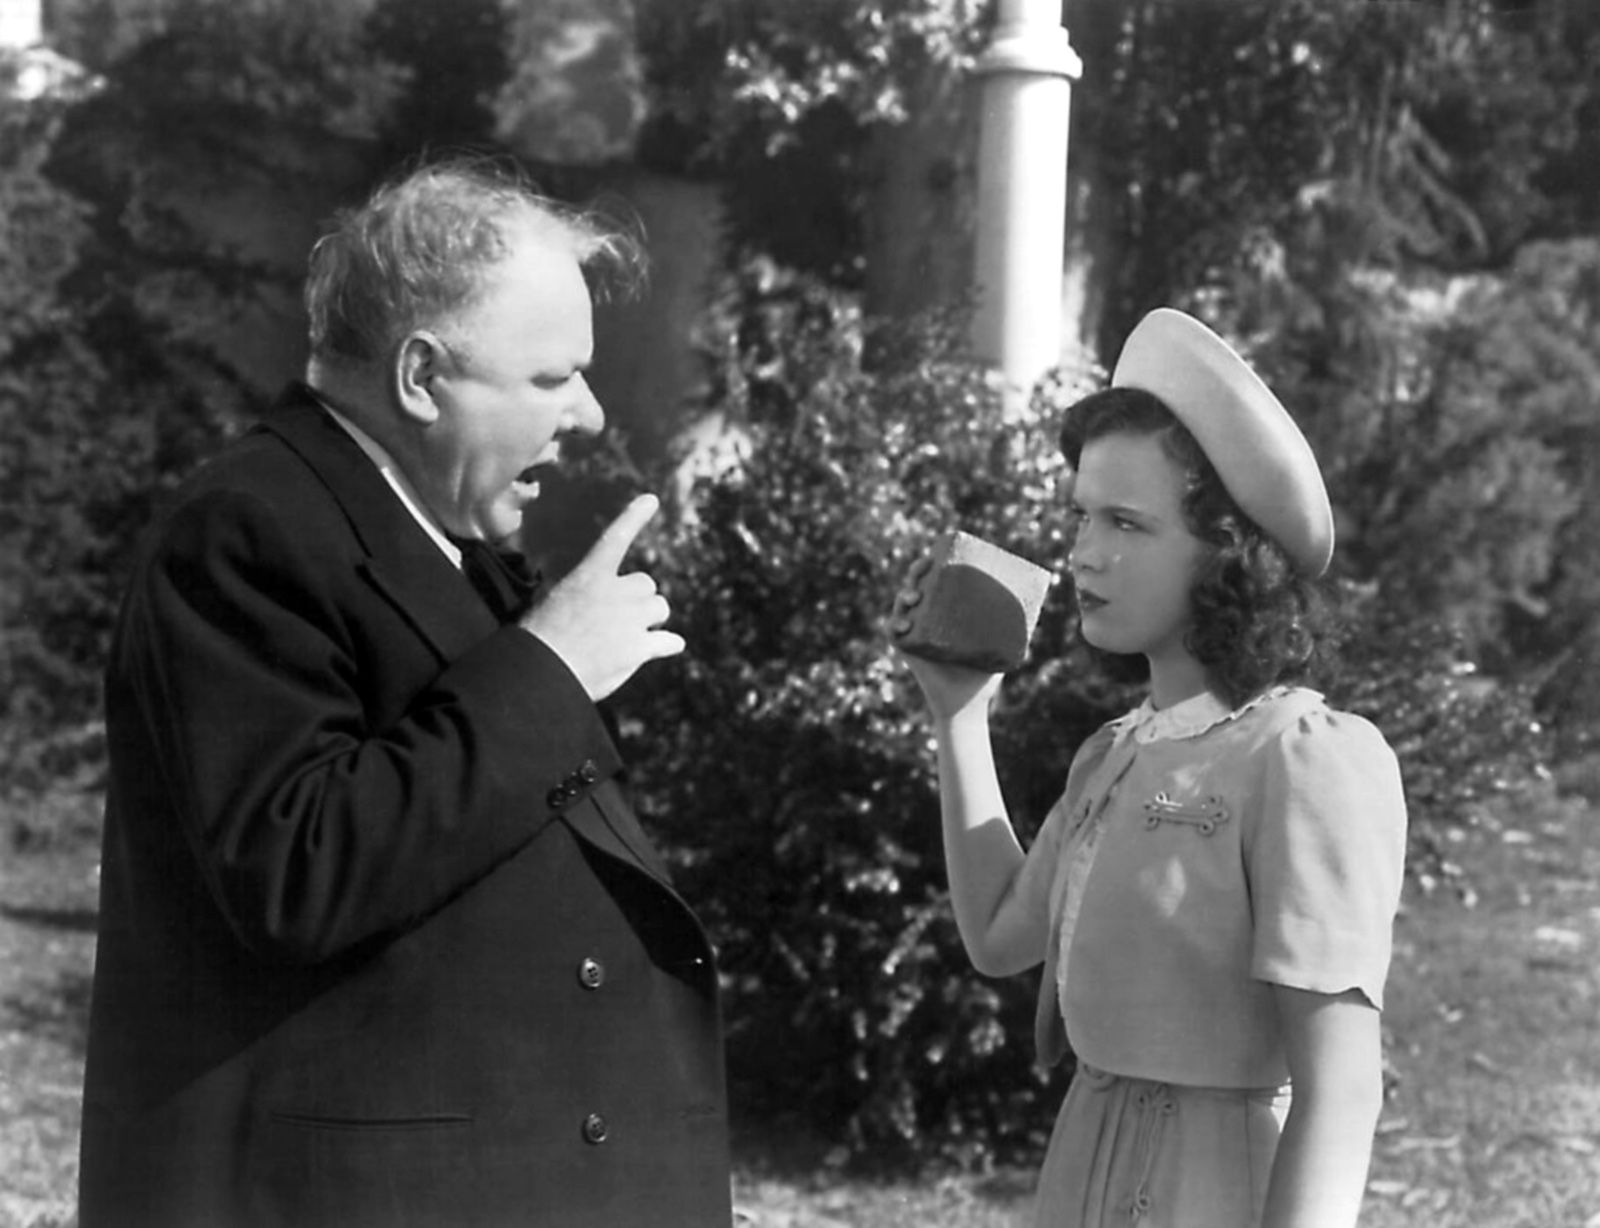 W.C. Fields with Gloria Jean